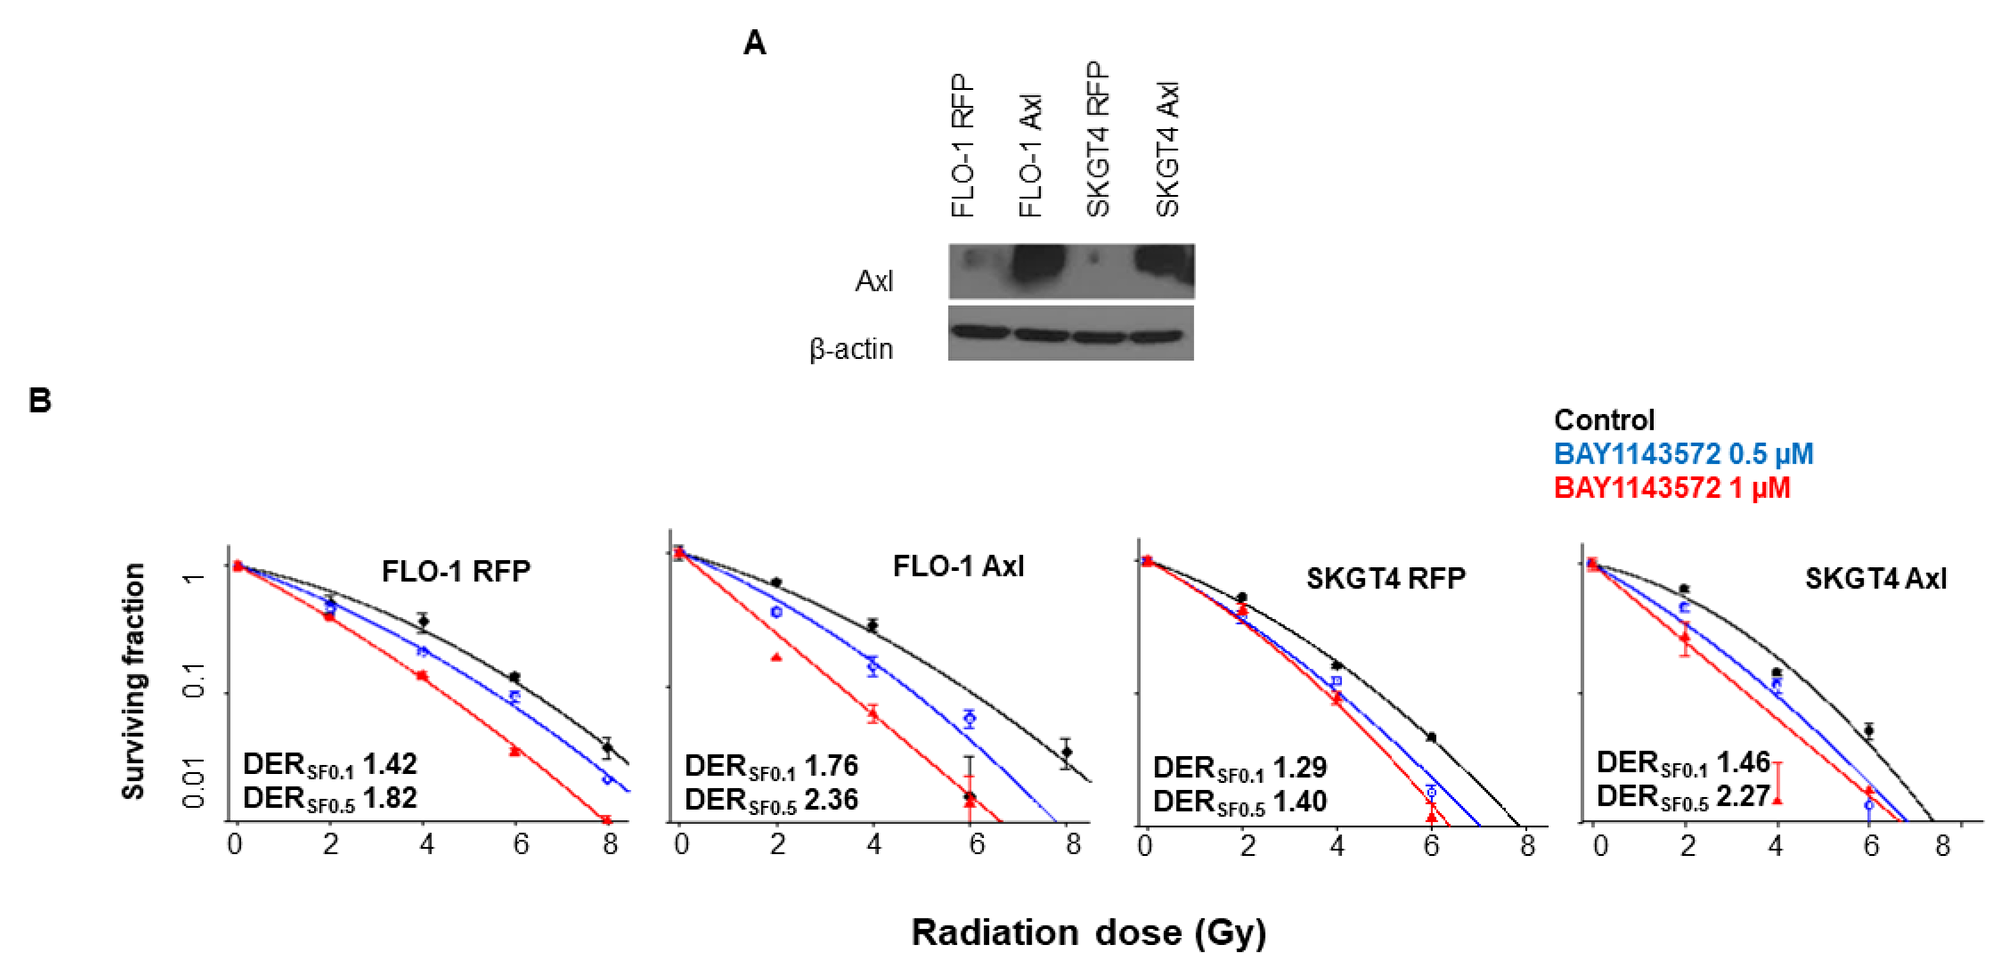 Overexpression of Axl enhanced radiosensitization by CDK9 inhibitors in esophageal adenocarcinoma cells.